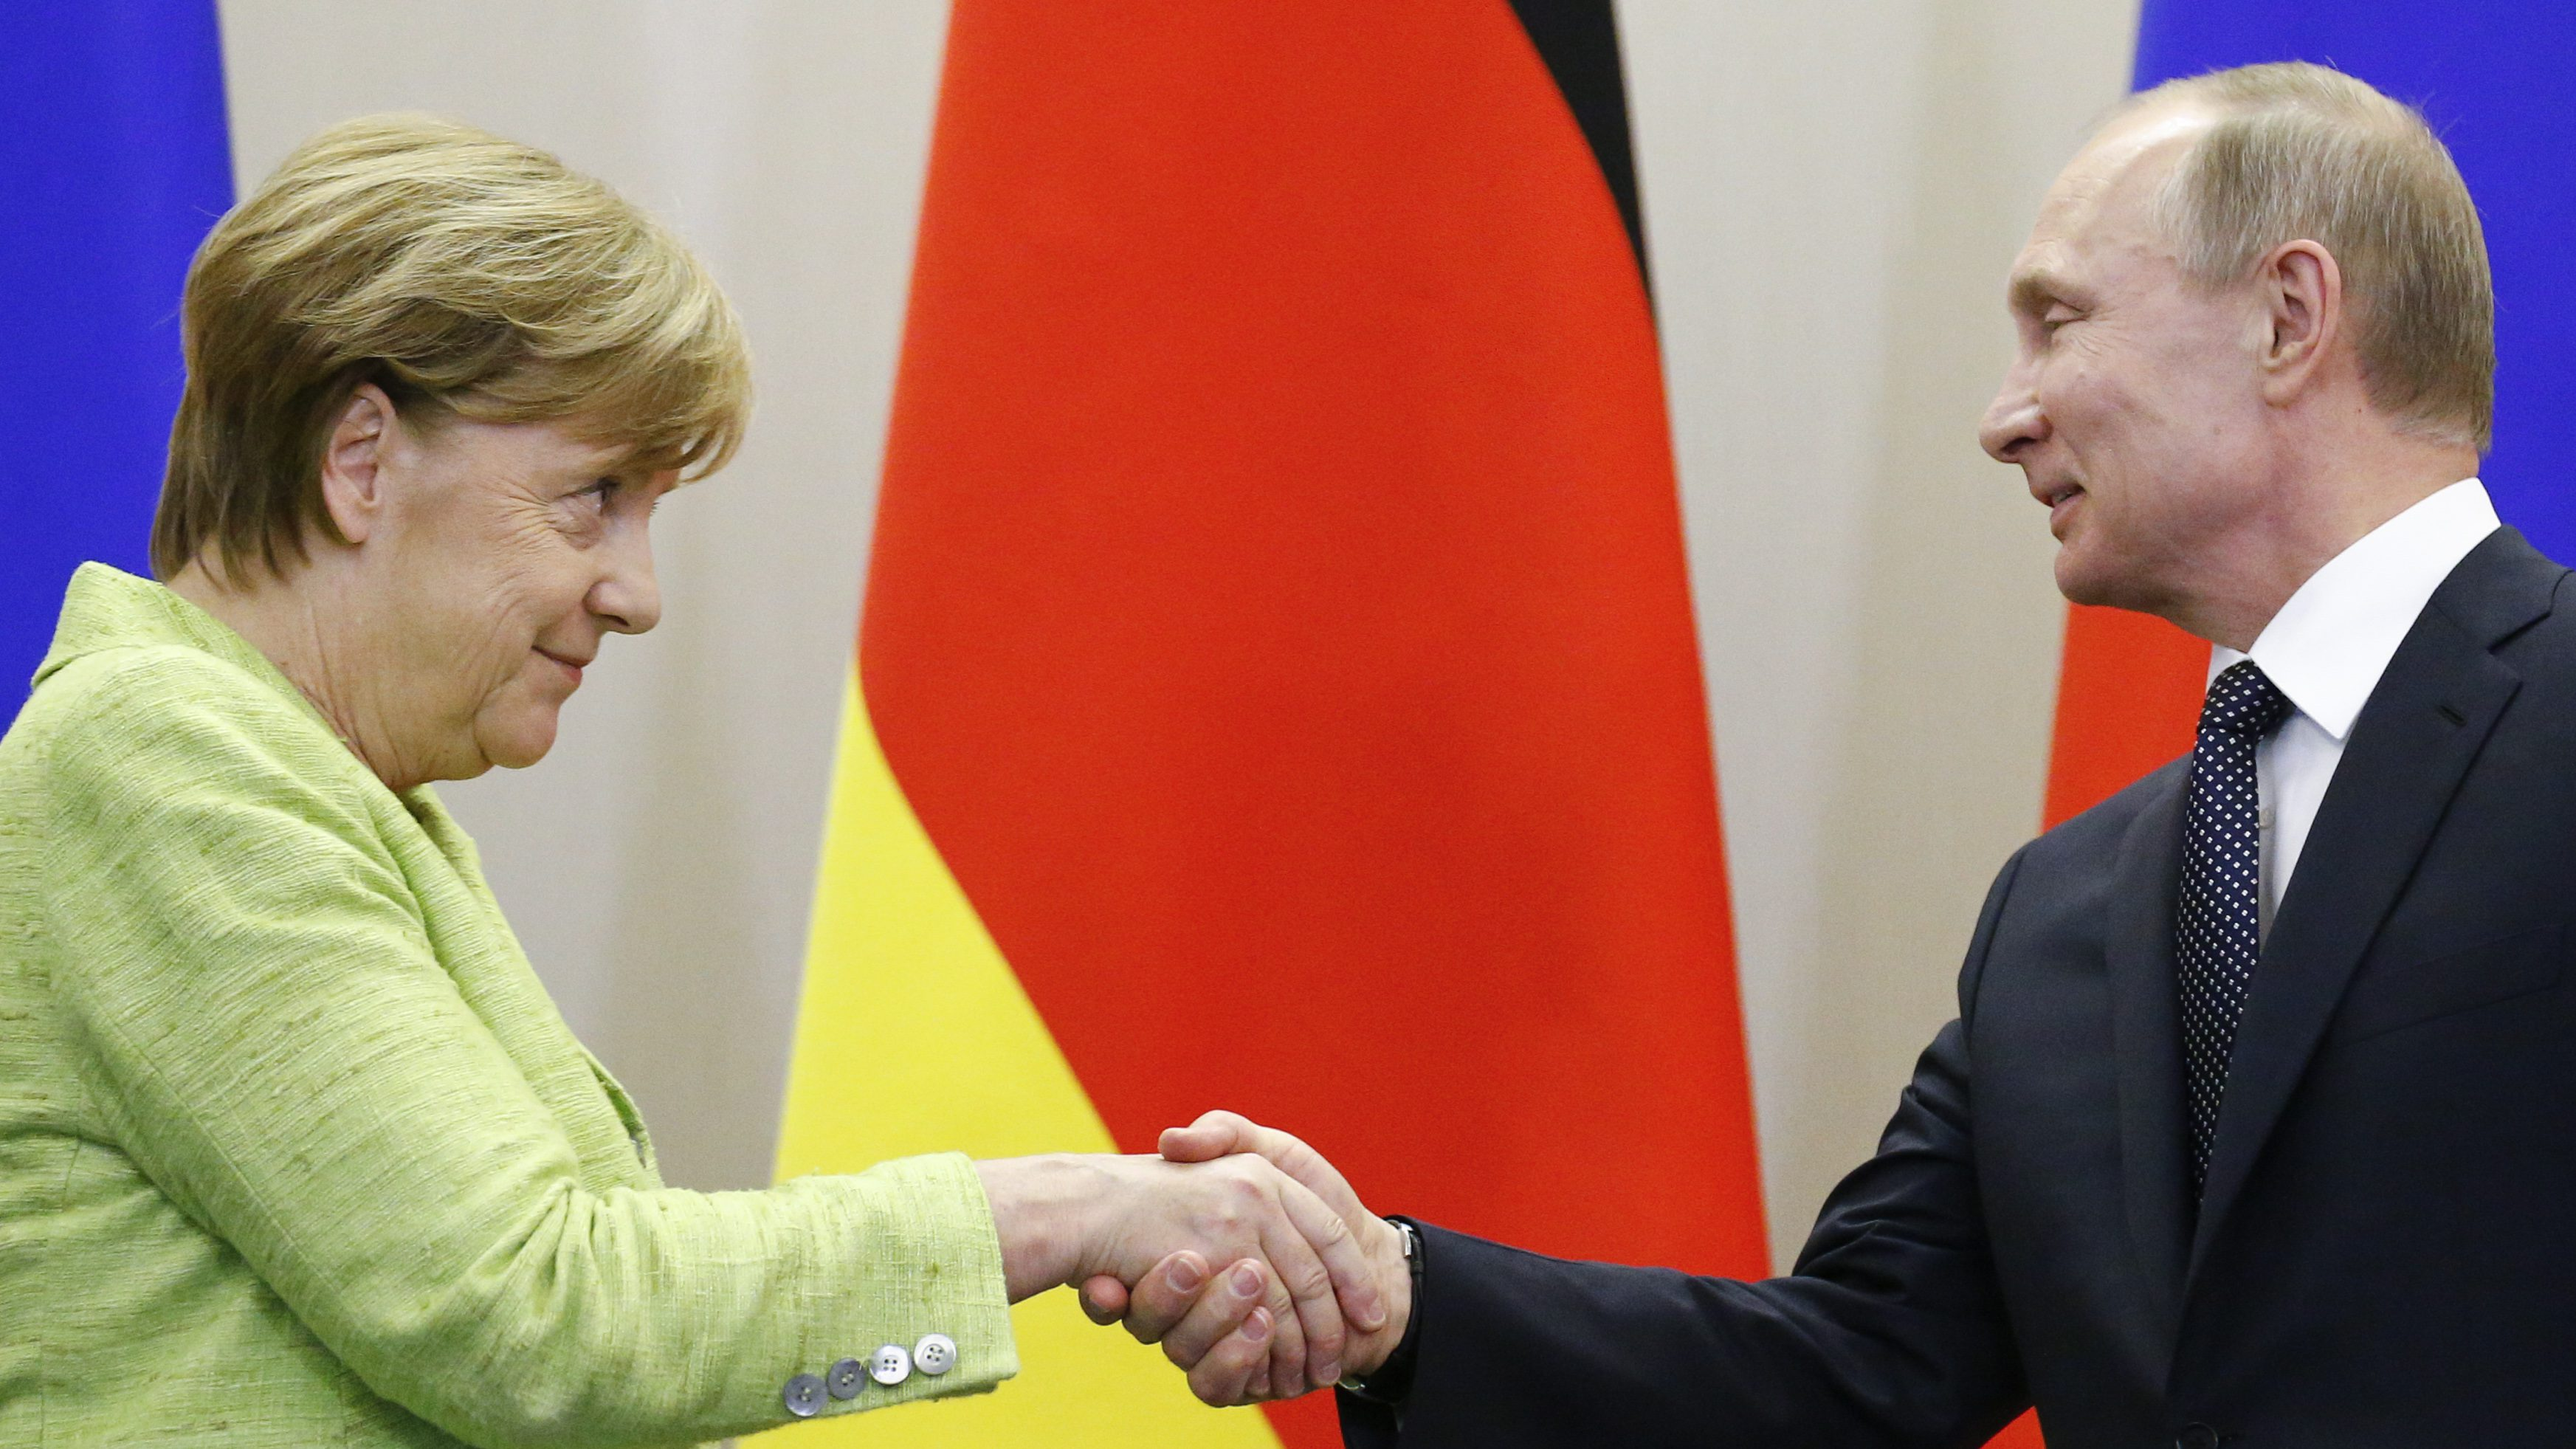 Russian President Vladimir Putin and German Chancellor Angela Merkel shake hands during a joint news conference following their talks at the Bocharov Ruchei state residence in Sochi, Russia, May 2, 2017.  - RTS14T1U